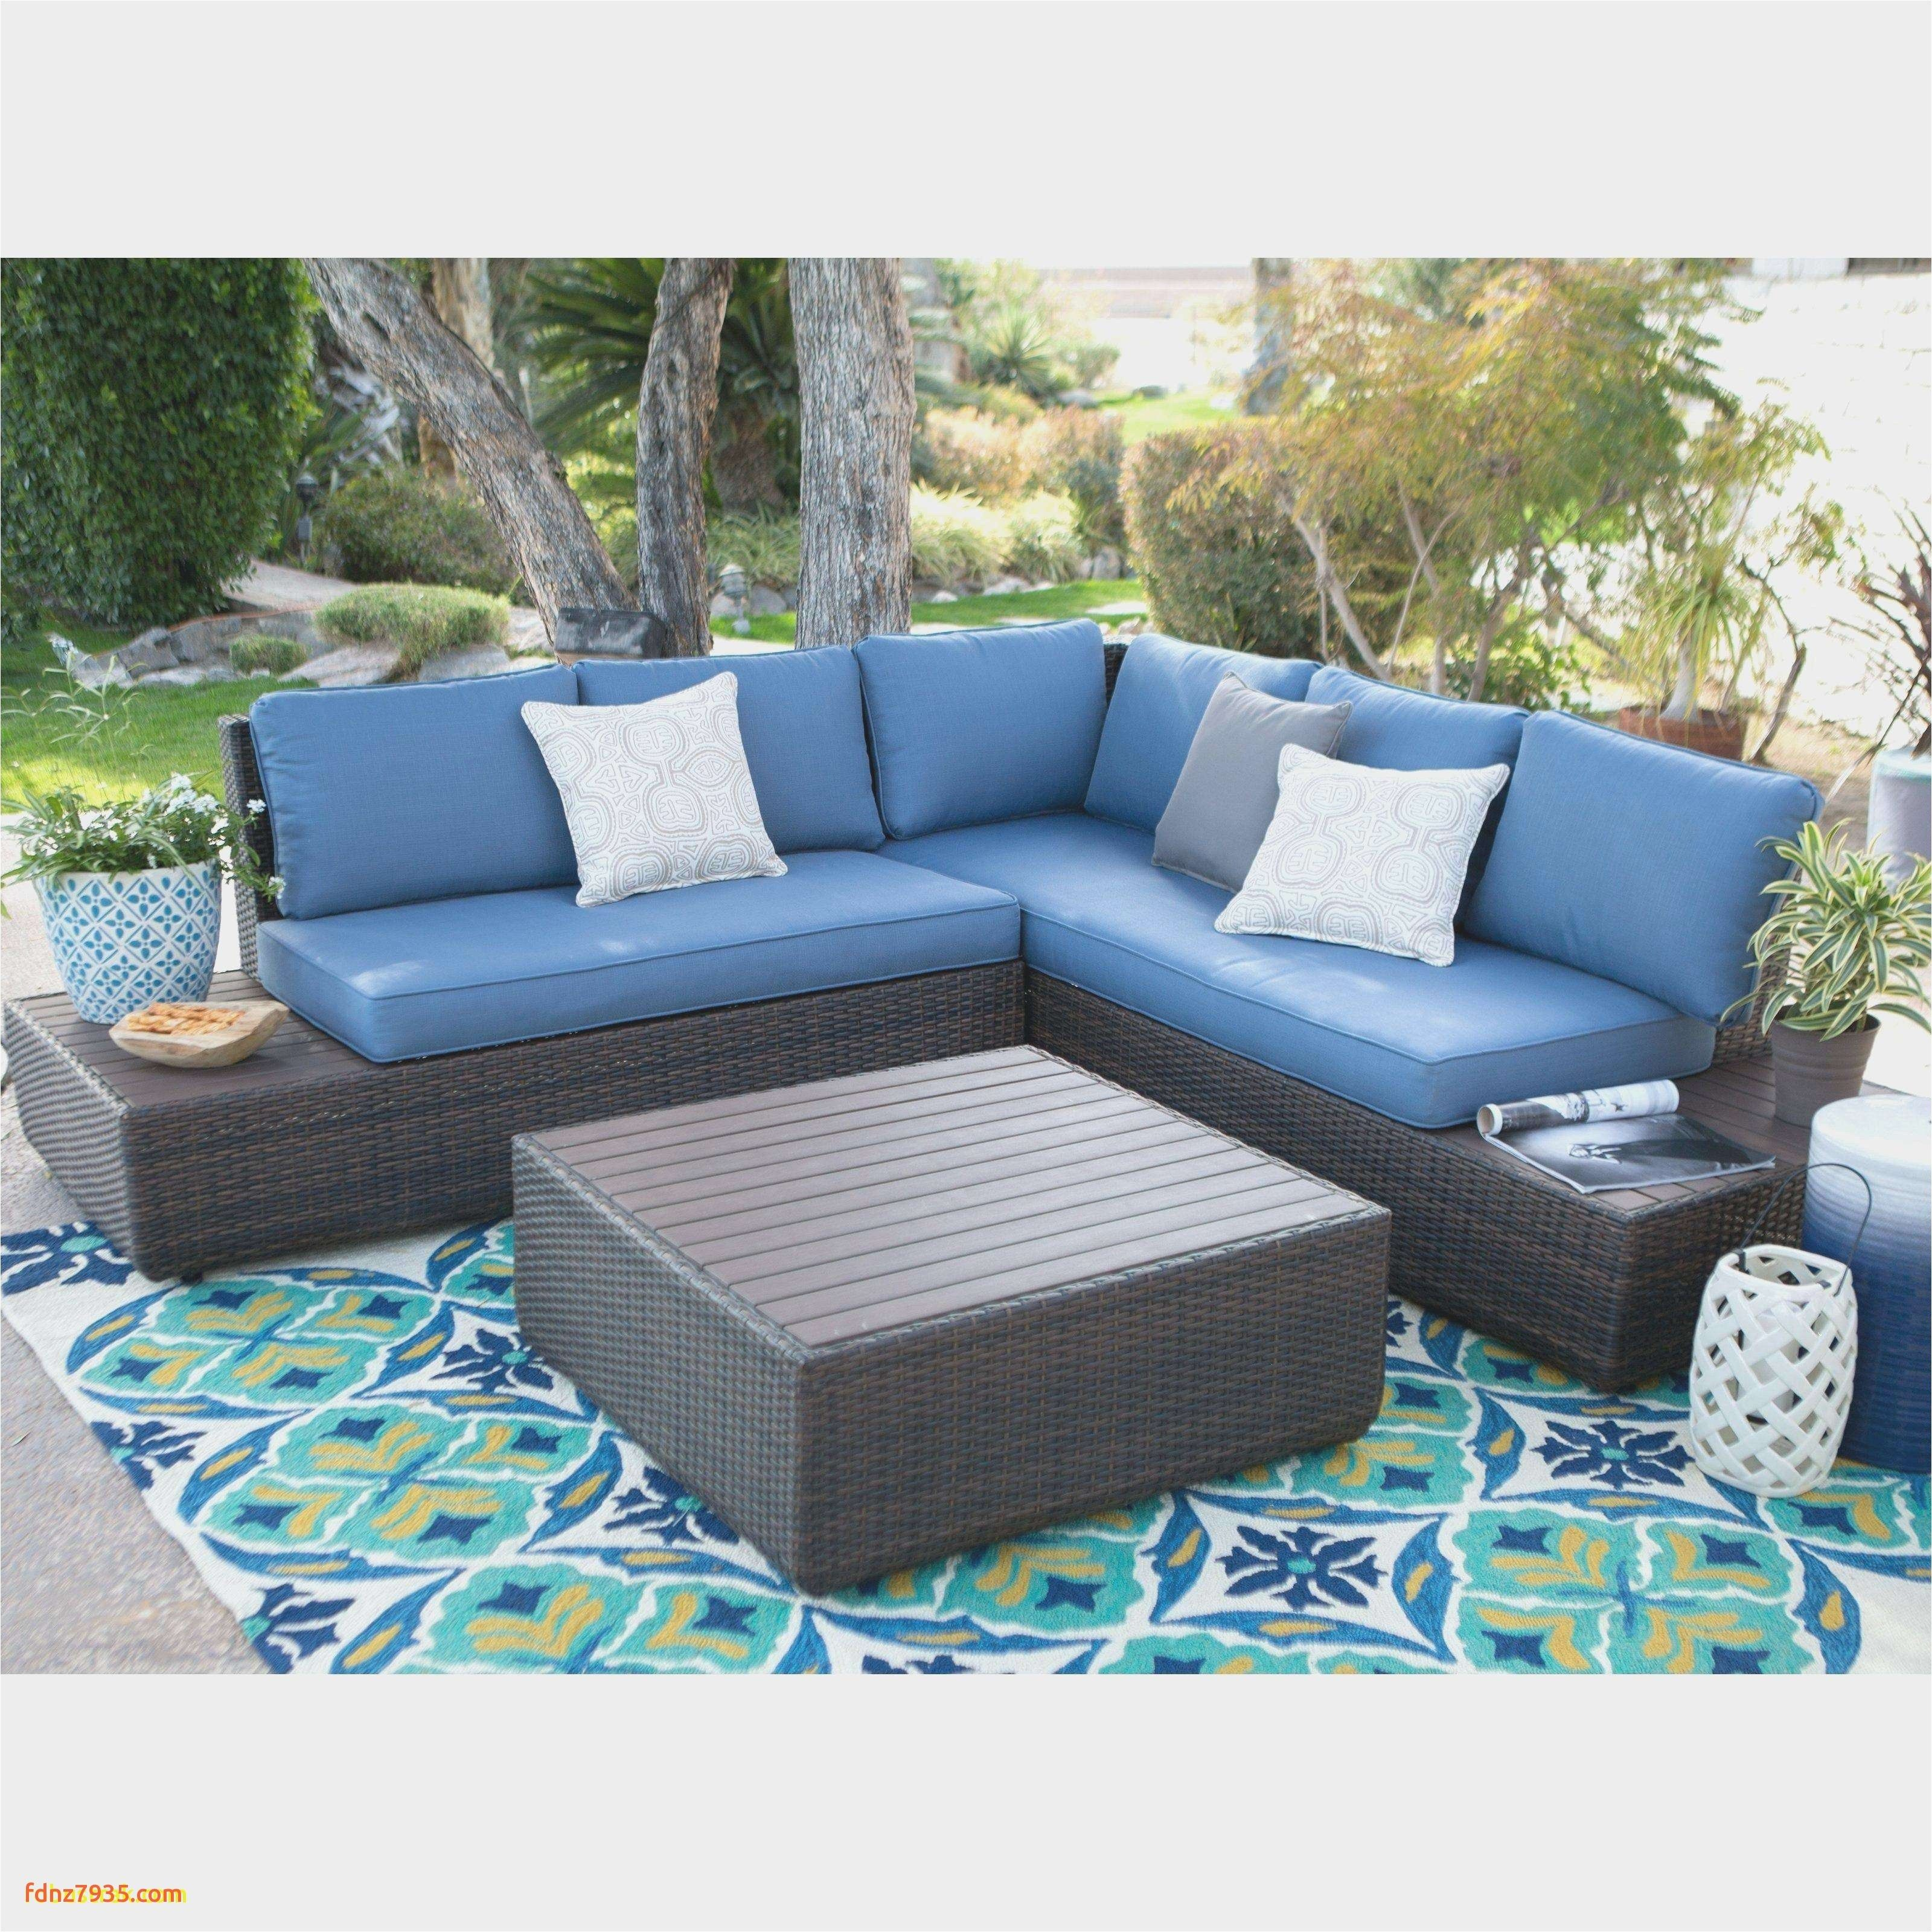 Lazyboy Patio Furniture Replacement Cushions Jape